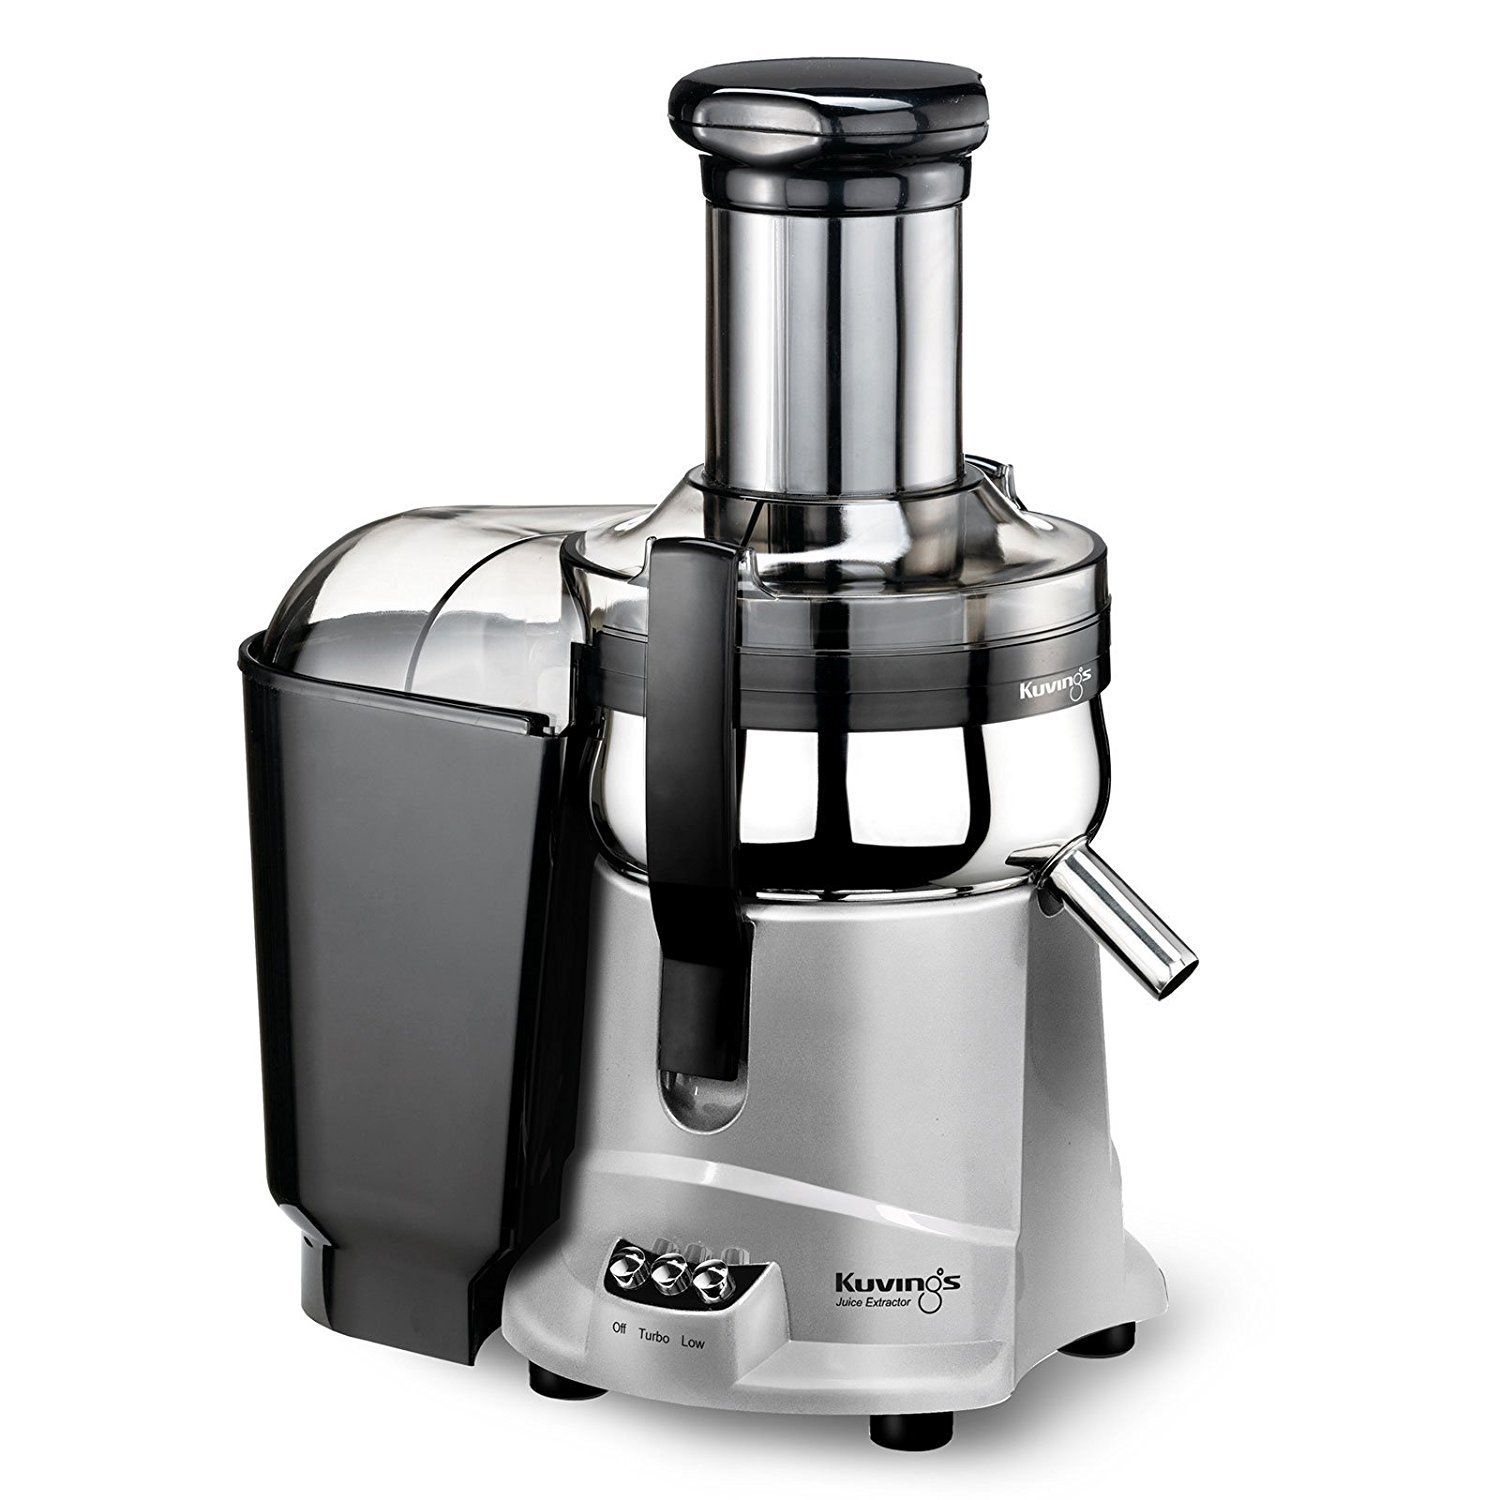 Kuvings Centrifugal Juice Extractor